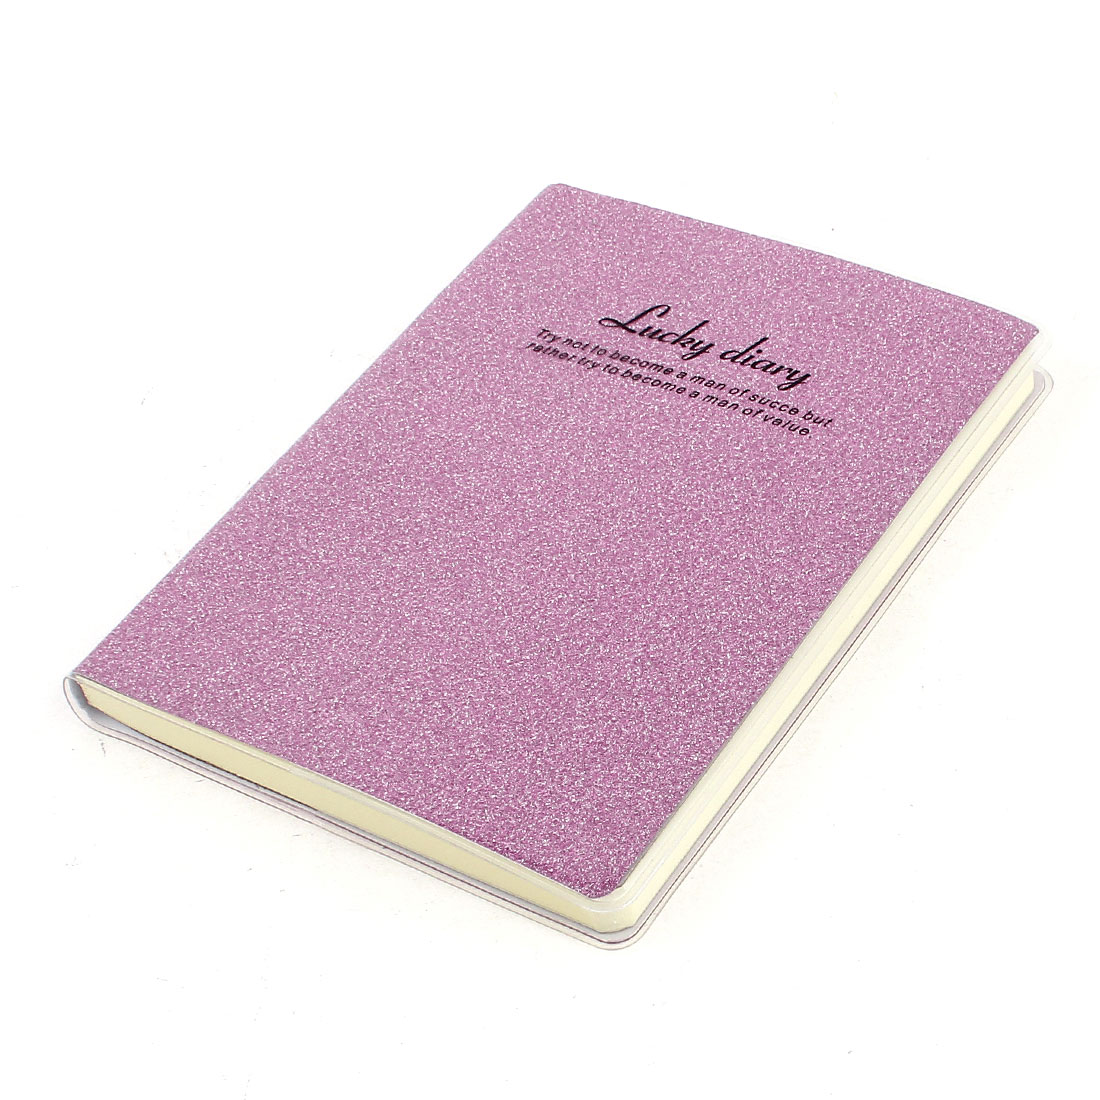 PVC Cover Pink Glitter Powder Decor Diary Memo Book Notepad 80 Sheets